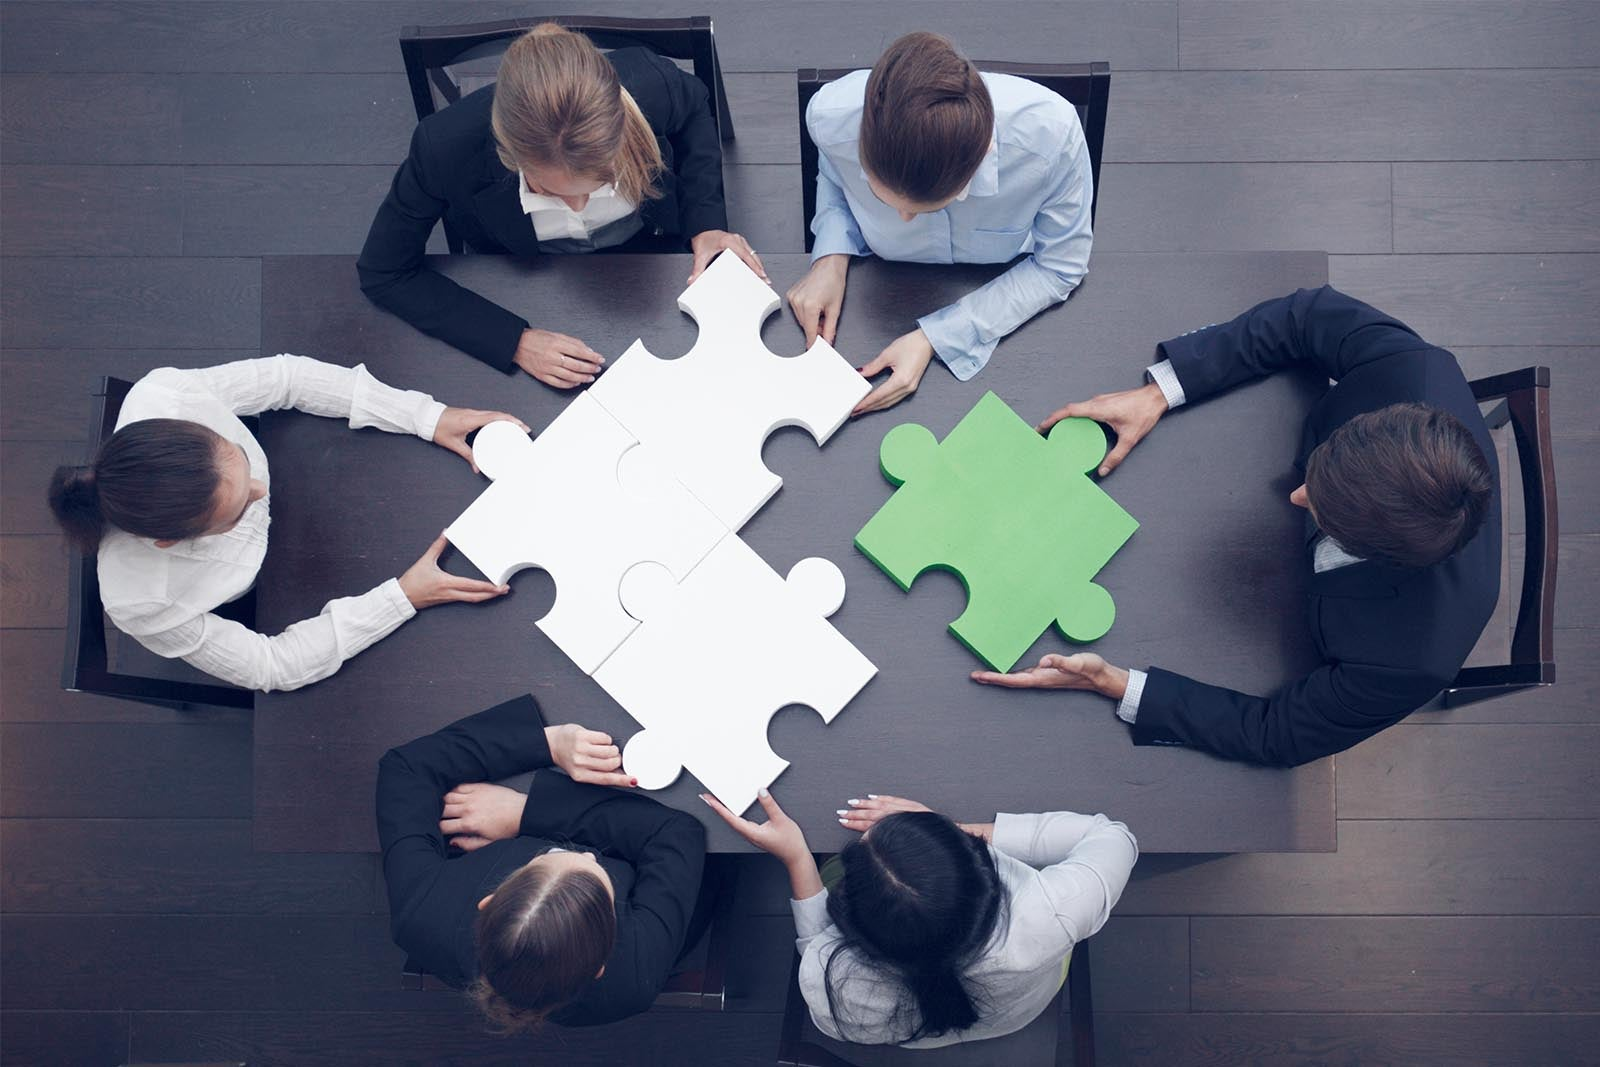 Group of business people putting together overly large puzzle pieces.